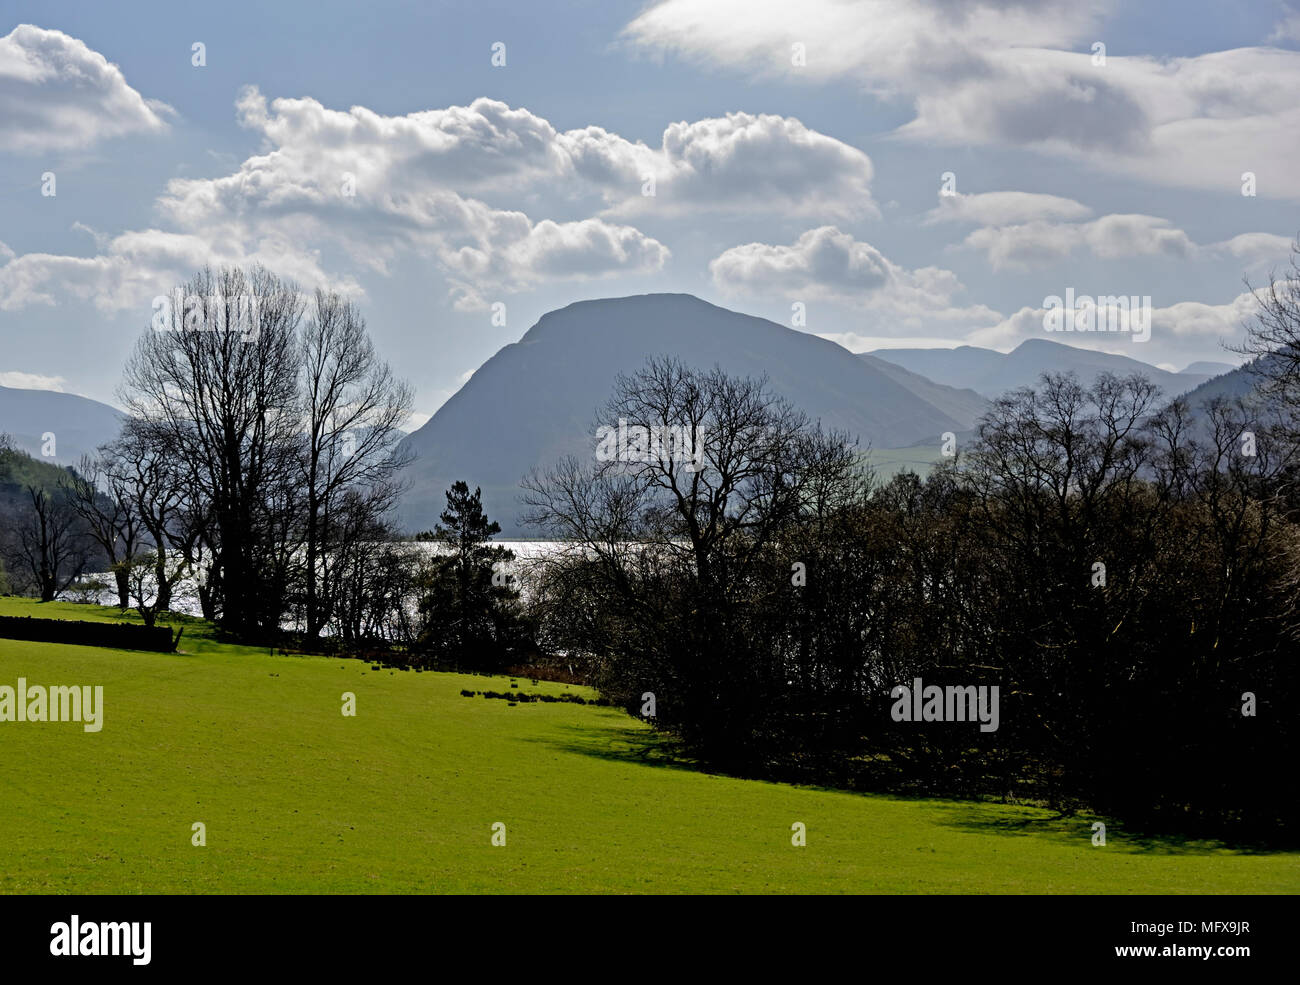 Mellbreak and Loweswater. Lake District National Park, Cumbria, England, United Kingdom, Europe. - Stock Image